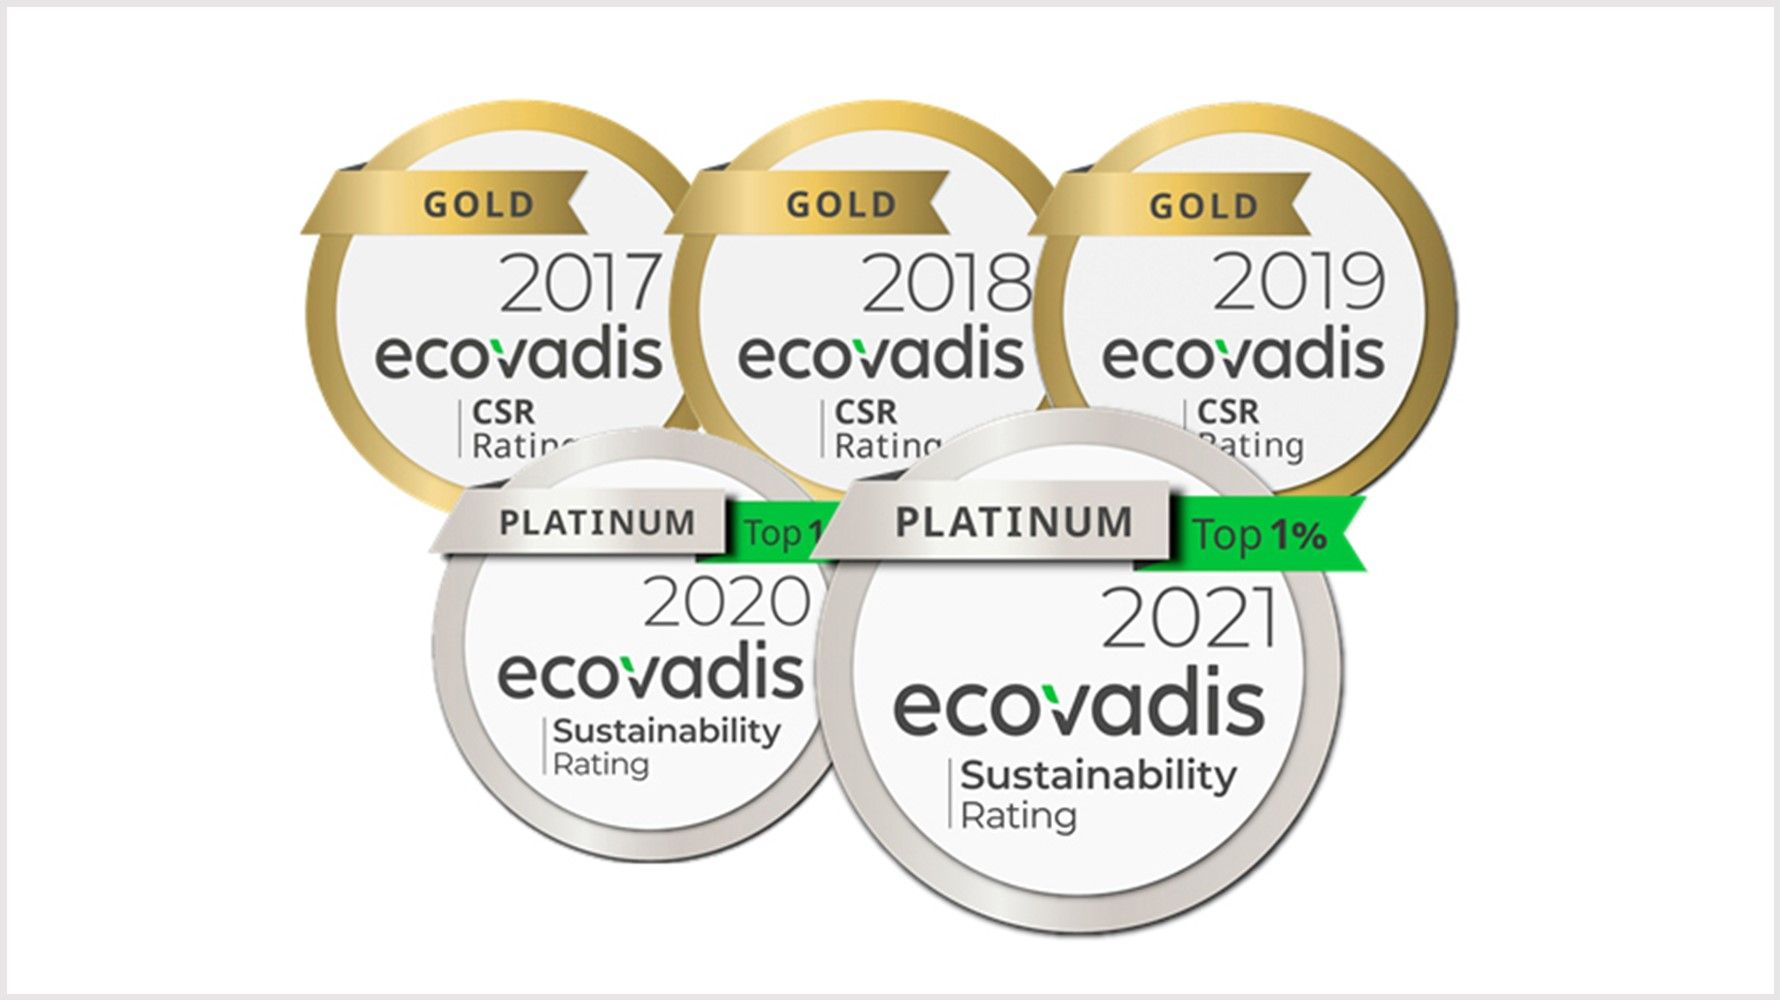 CWT awarded Platinum status for responsible business by EcoVadis